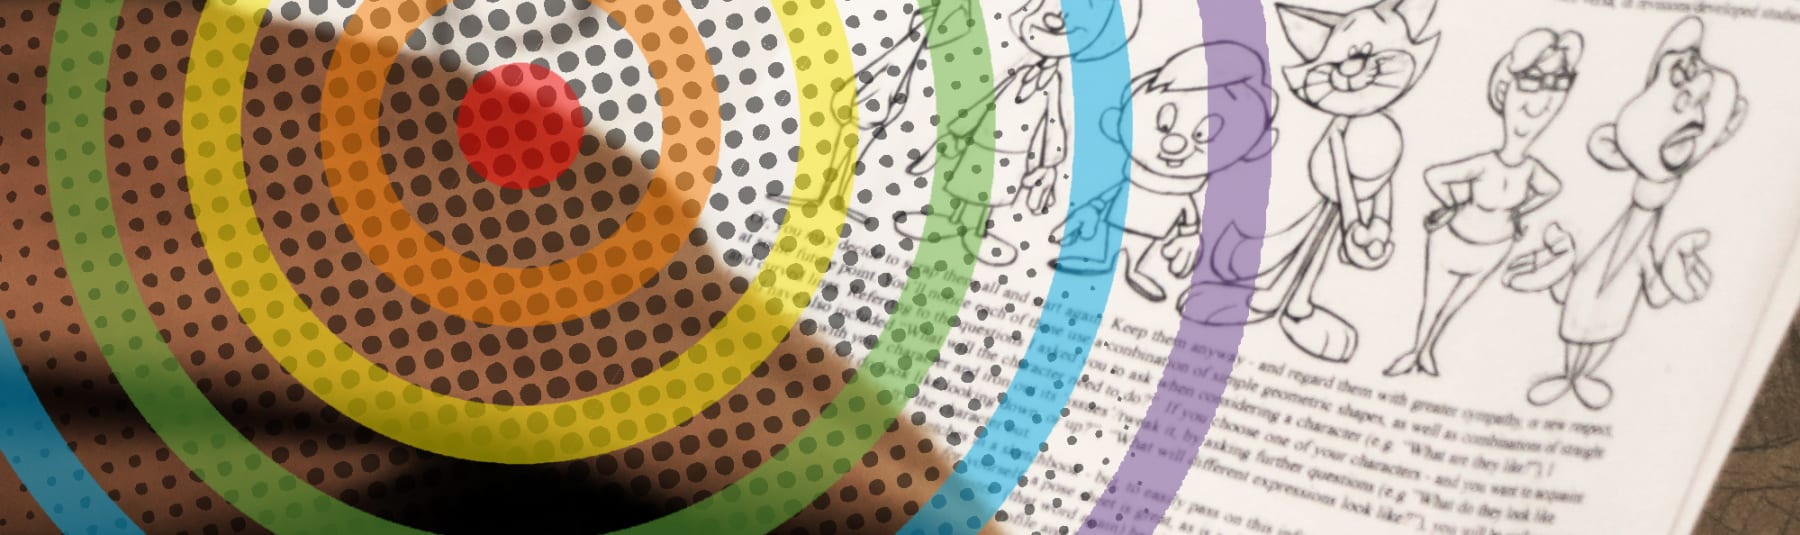 Drawing cartoon character guide with dots and rainbow pattern on top of photograph.